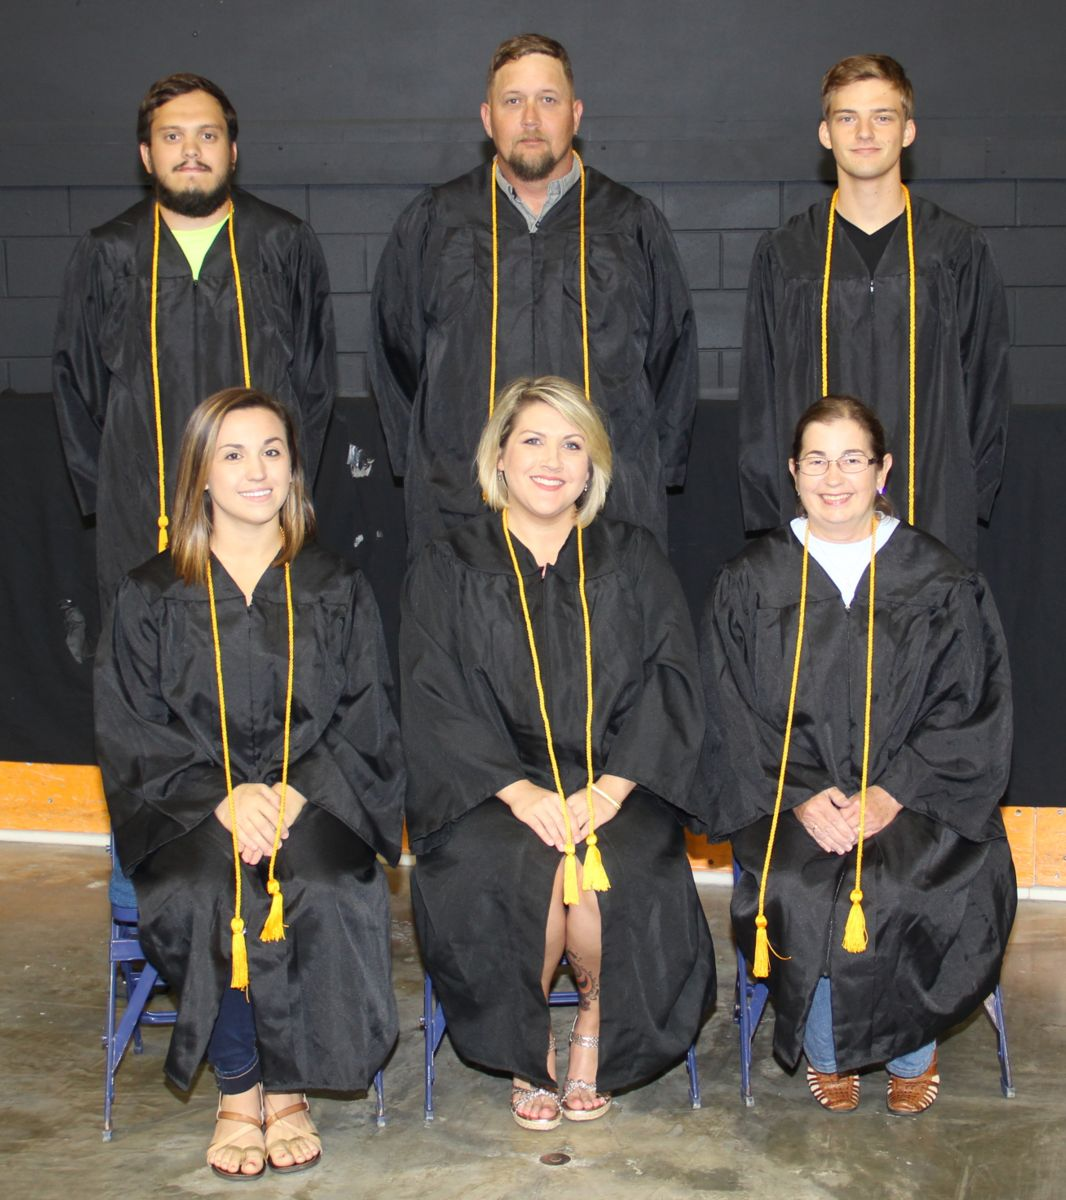 Picture shows some honor graduates